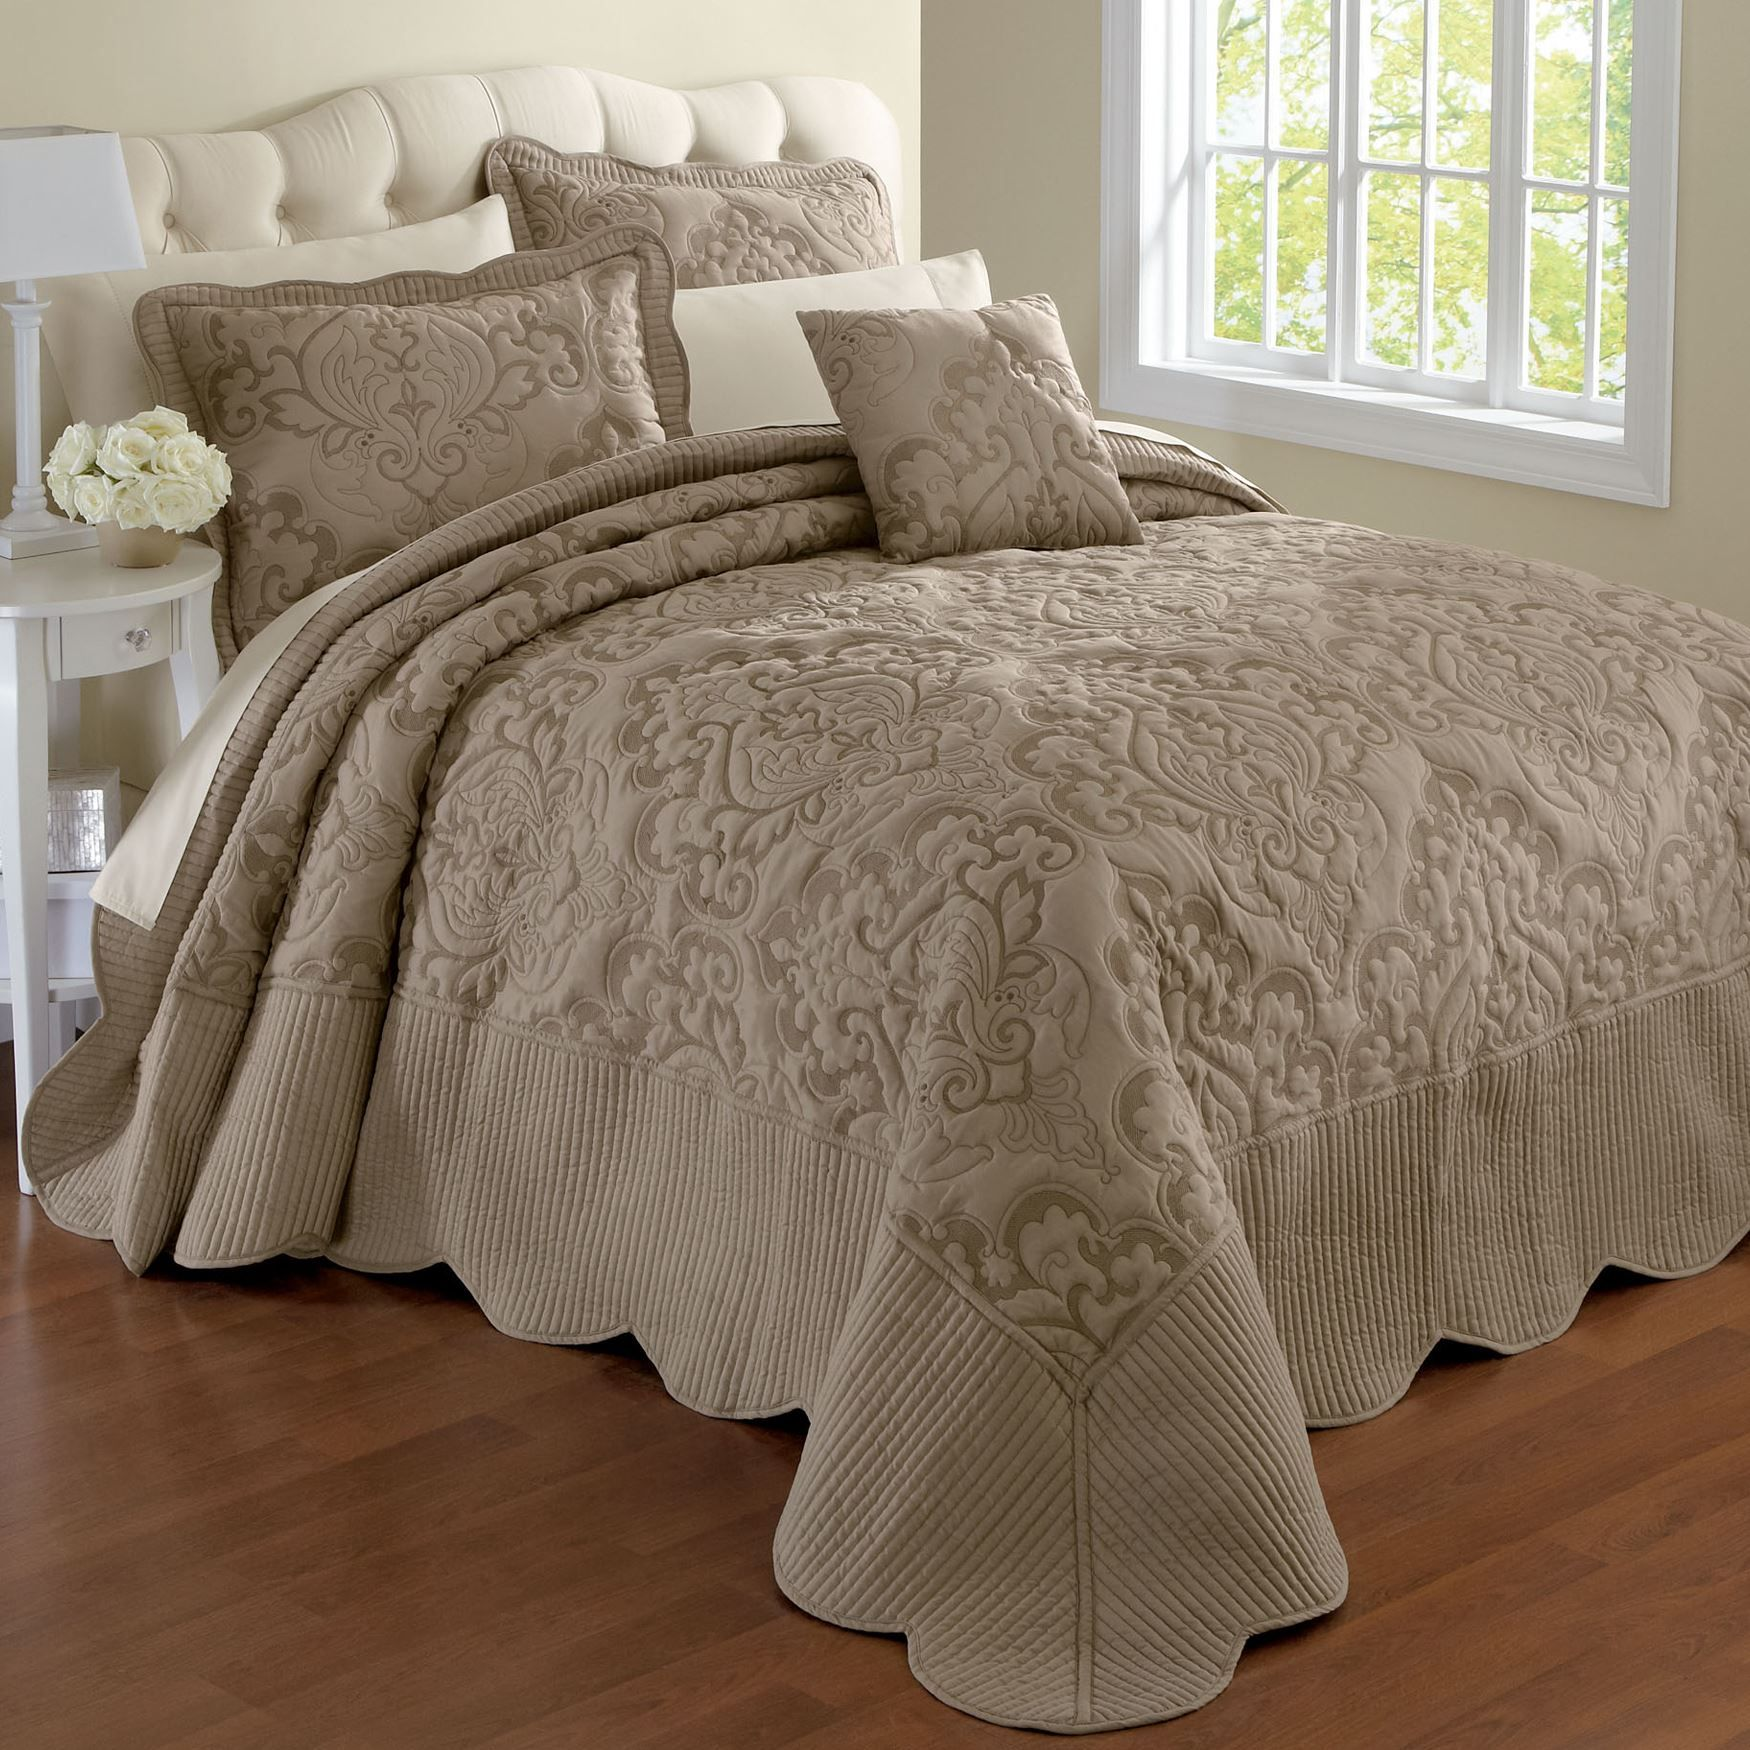 Amelia Oversized Bedspread More Bedspreads Bed Spreads Home Bed